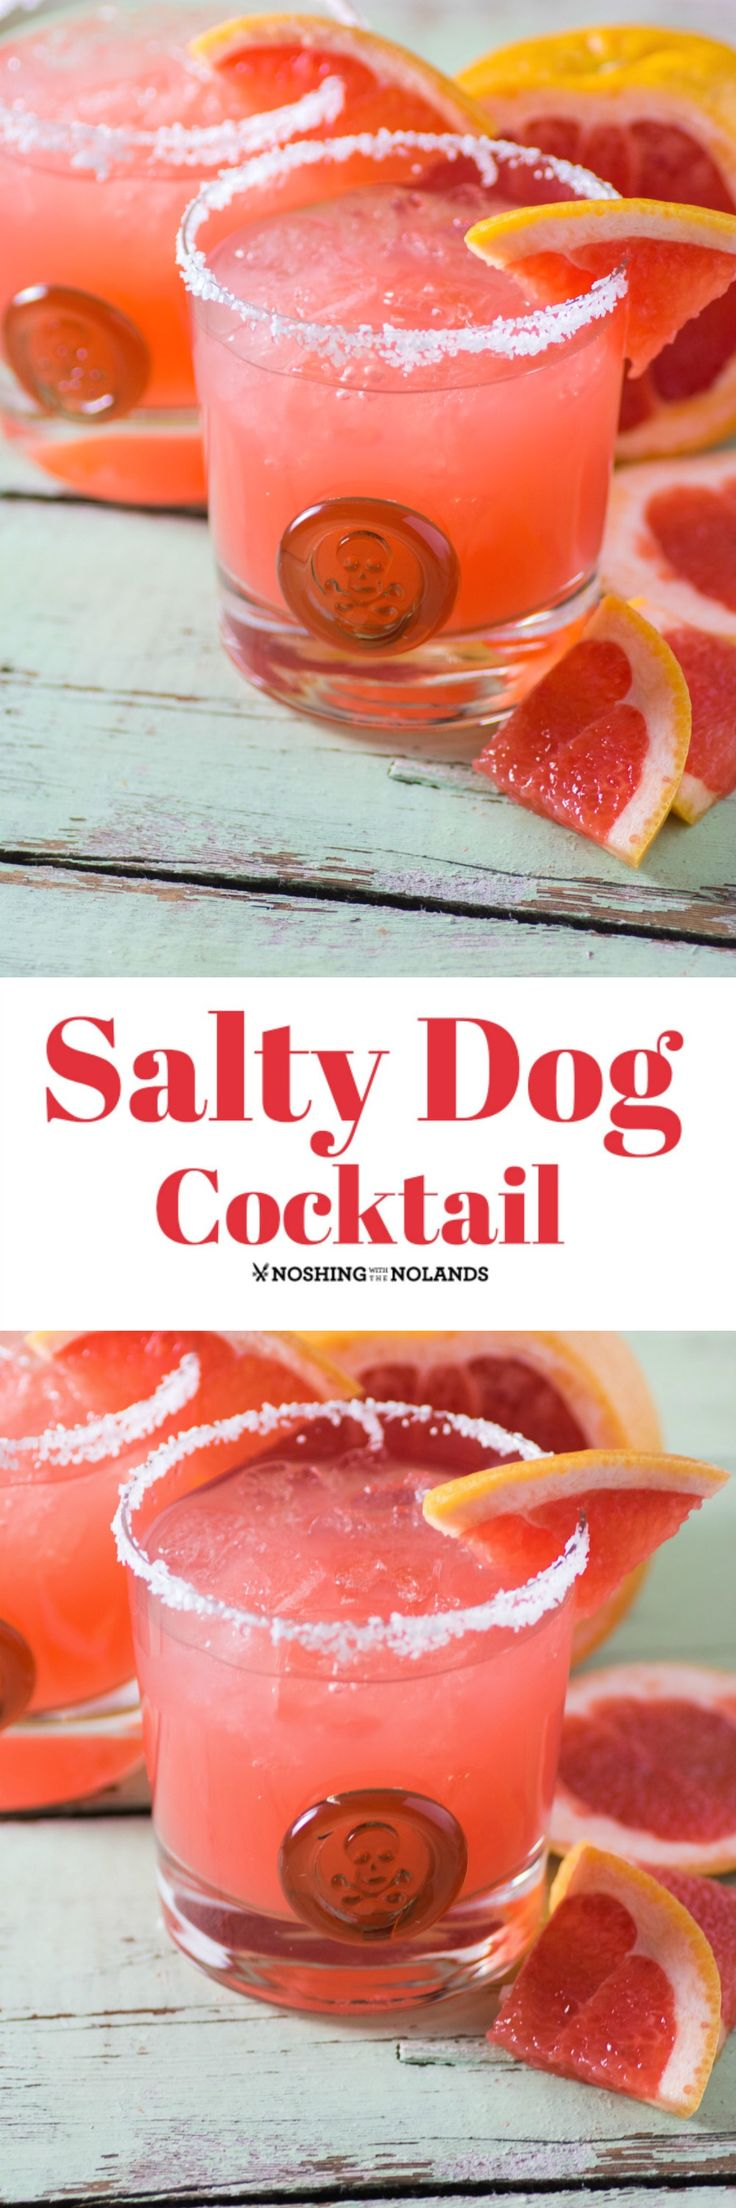 Salty Dog Cocktail by Noshing With The Nolands is an easy to make libation with its salty rim and sweet and tart flavor!